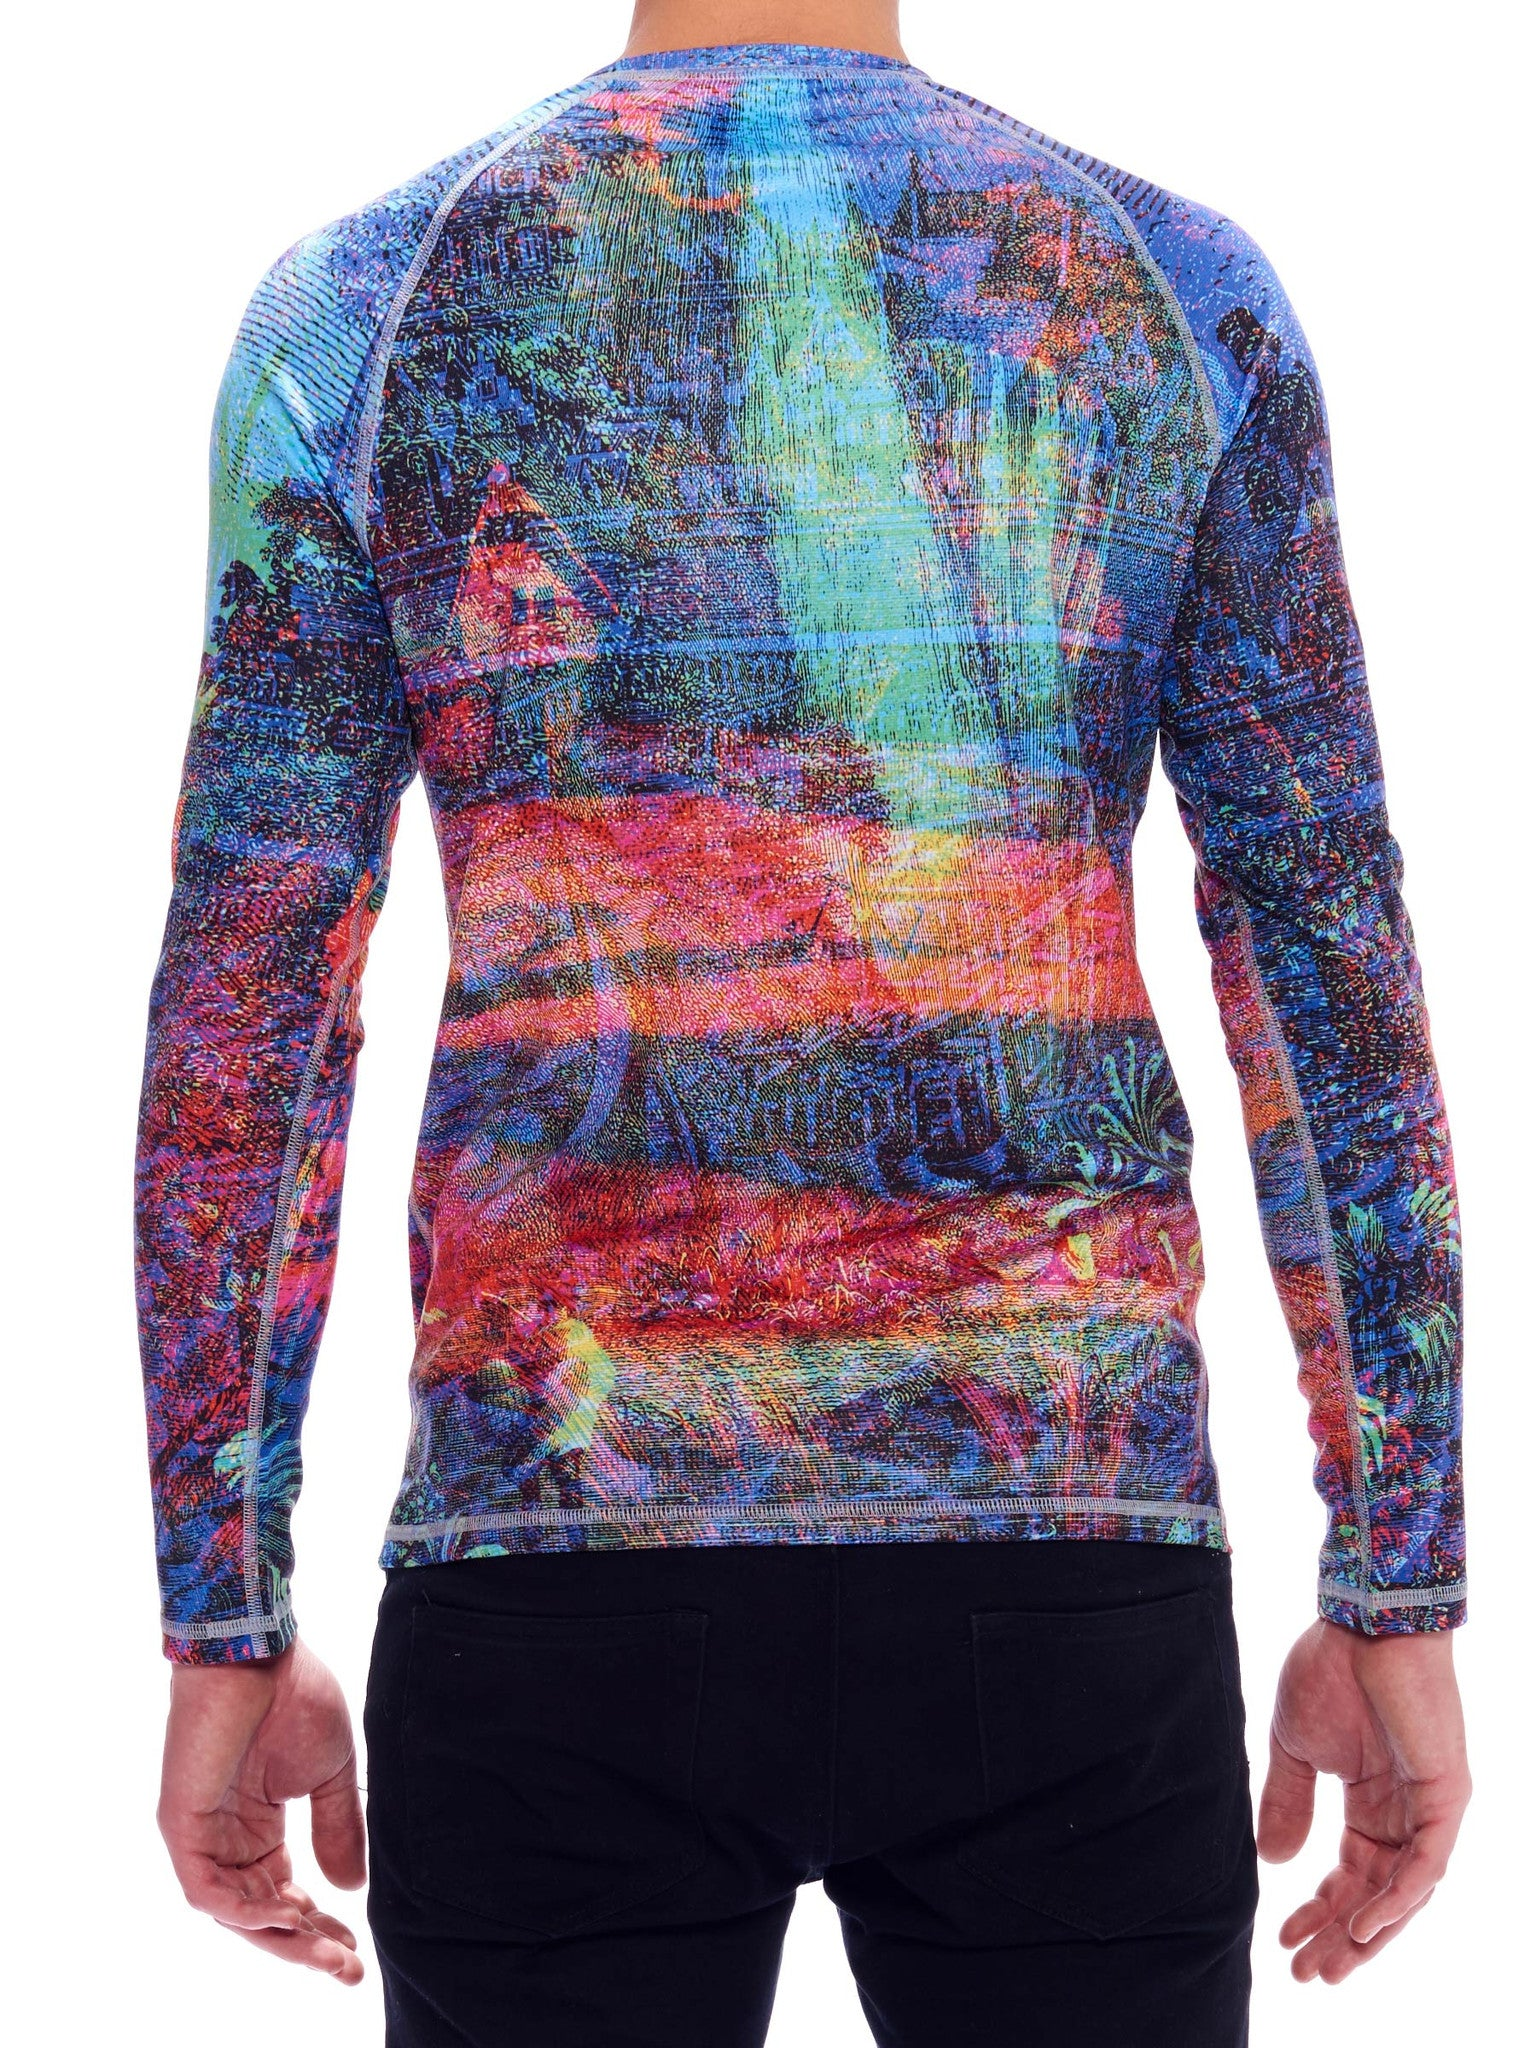 Landscape II Men's Baselayer Top - Nuvango Gallery & Goods - 3